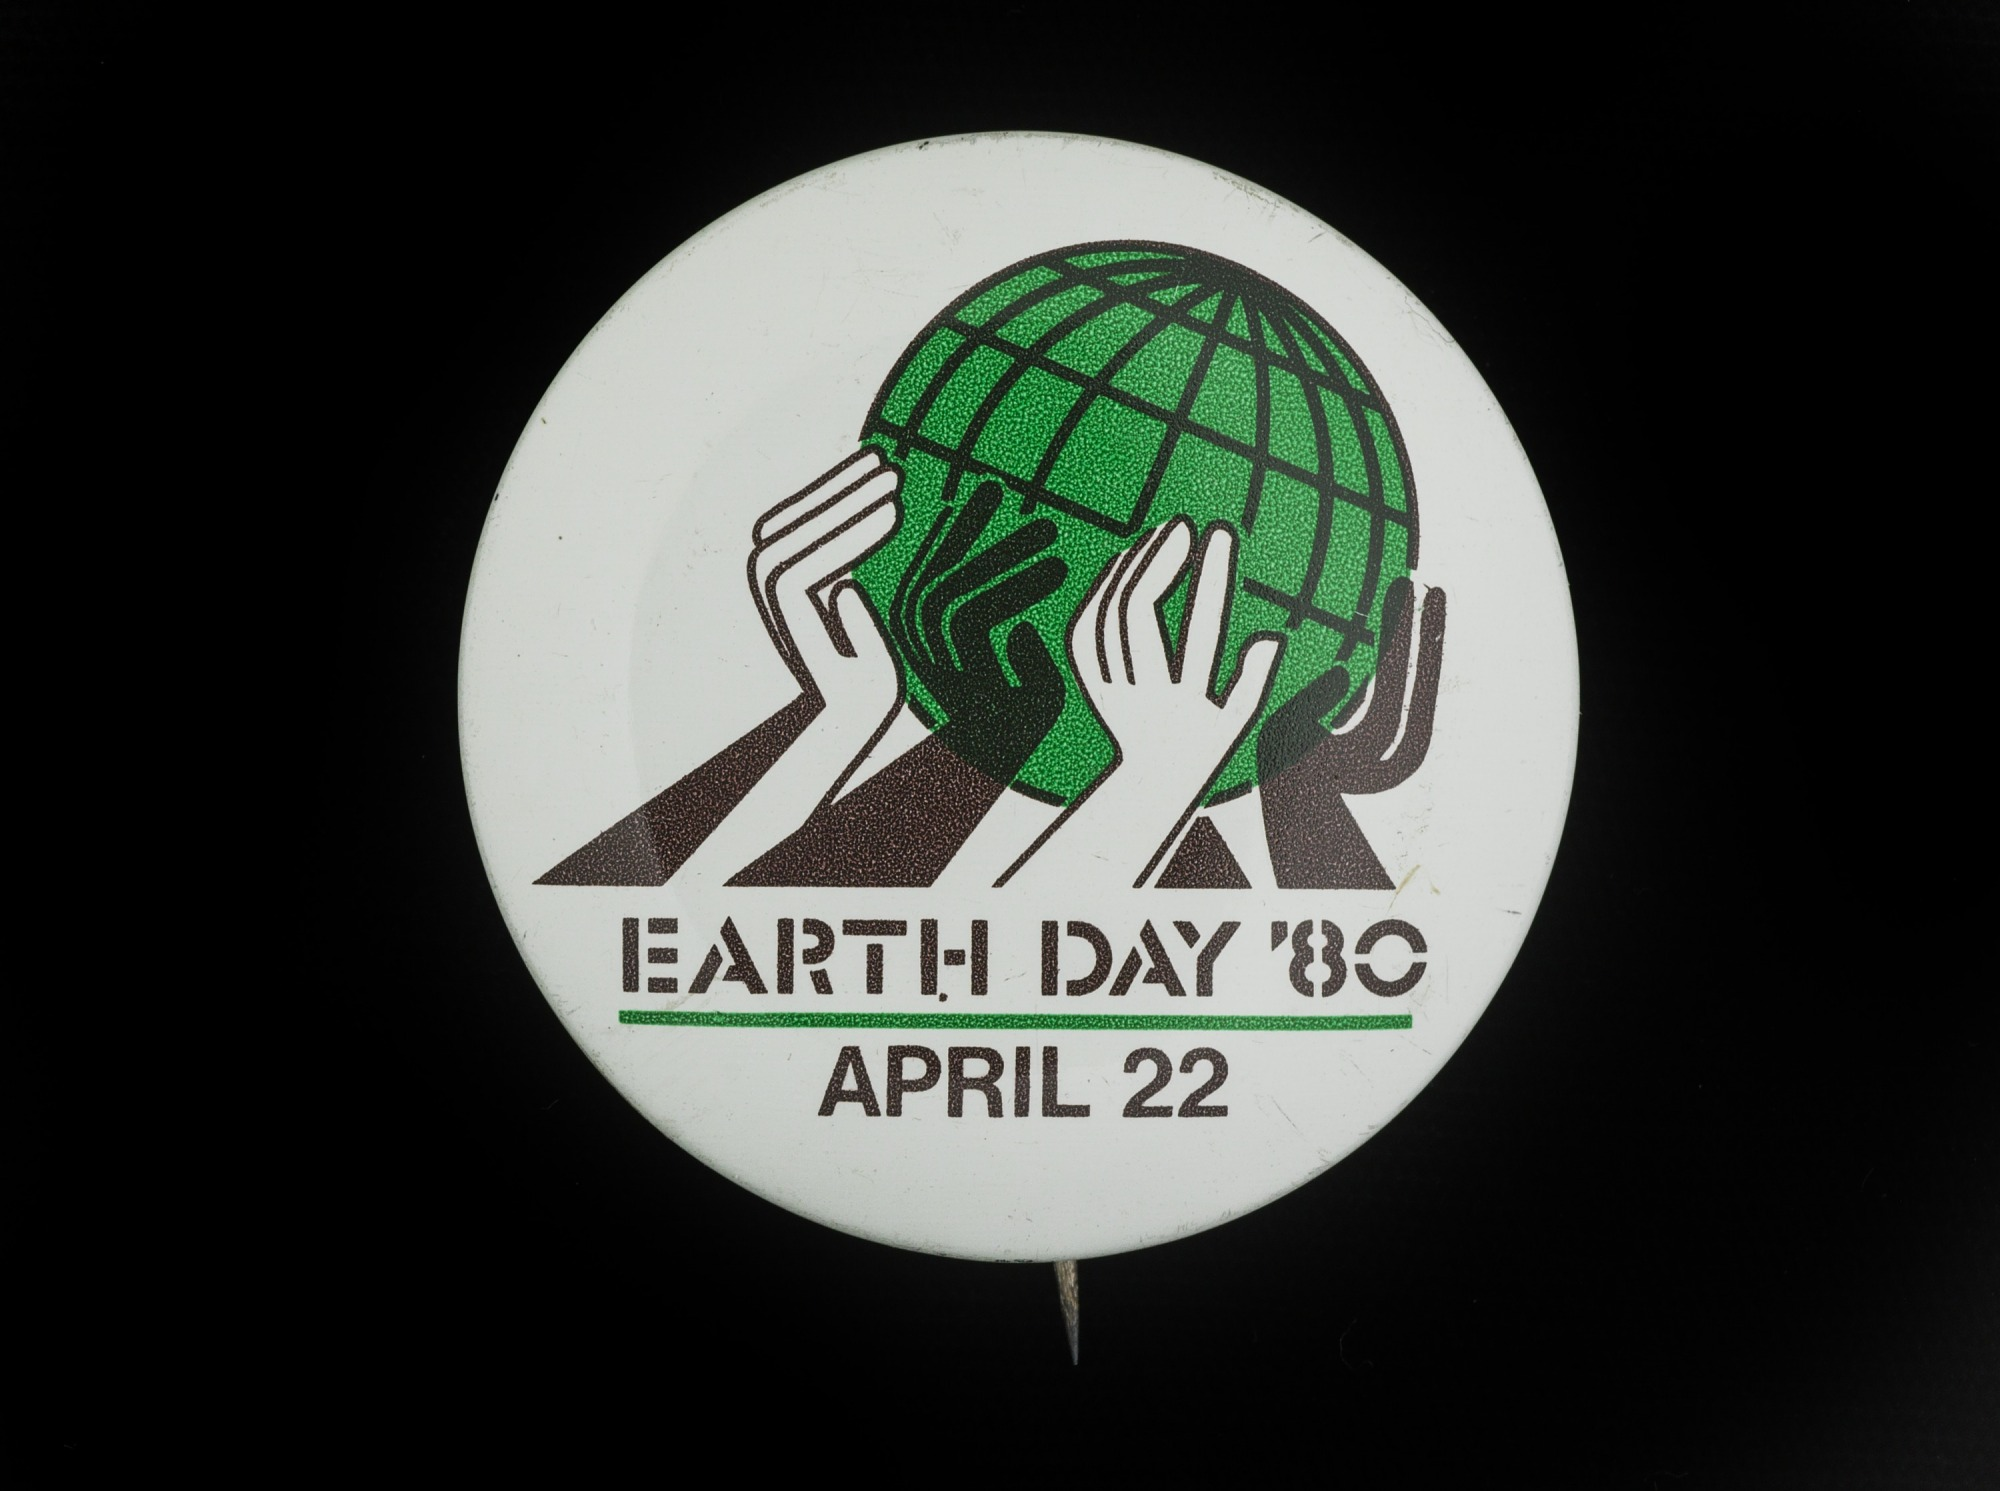 images for Earth Day '80 April 22